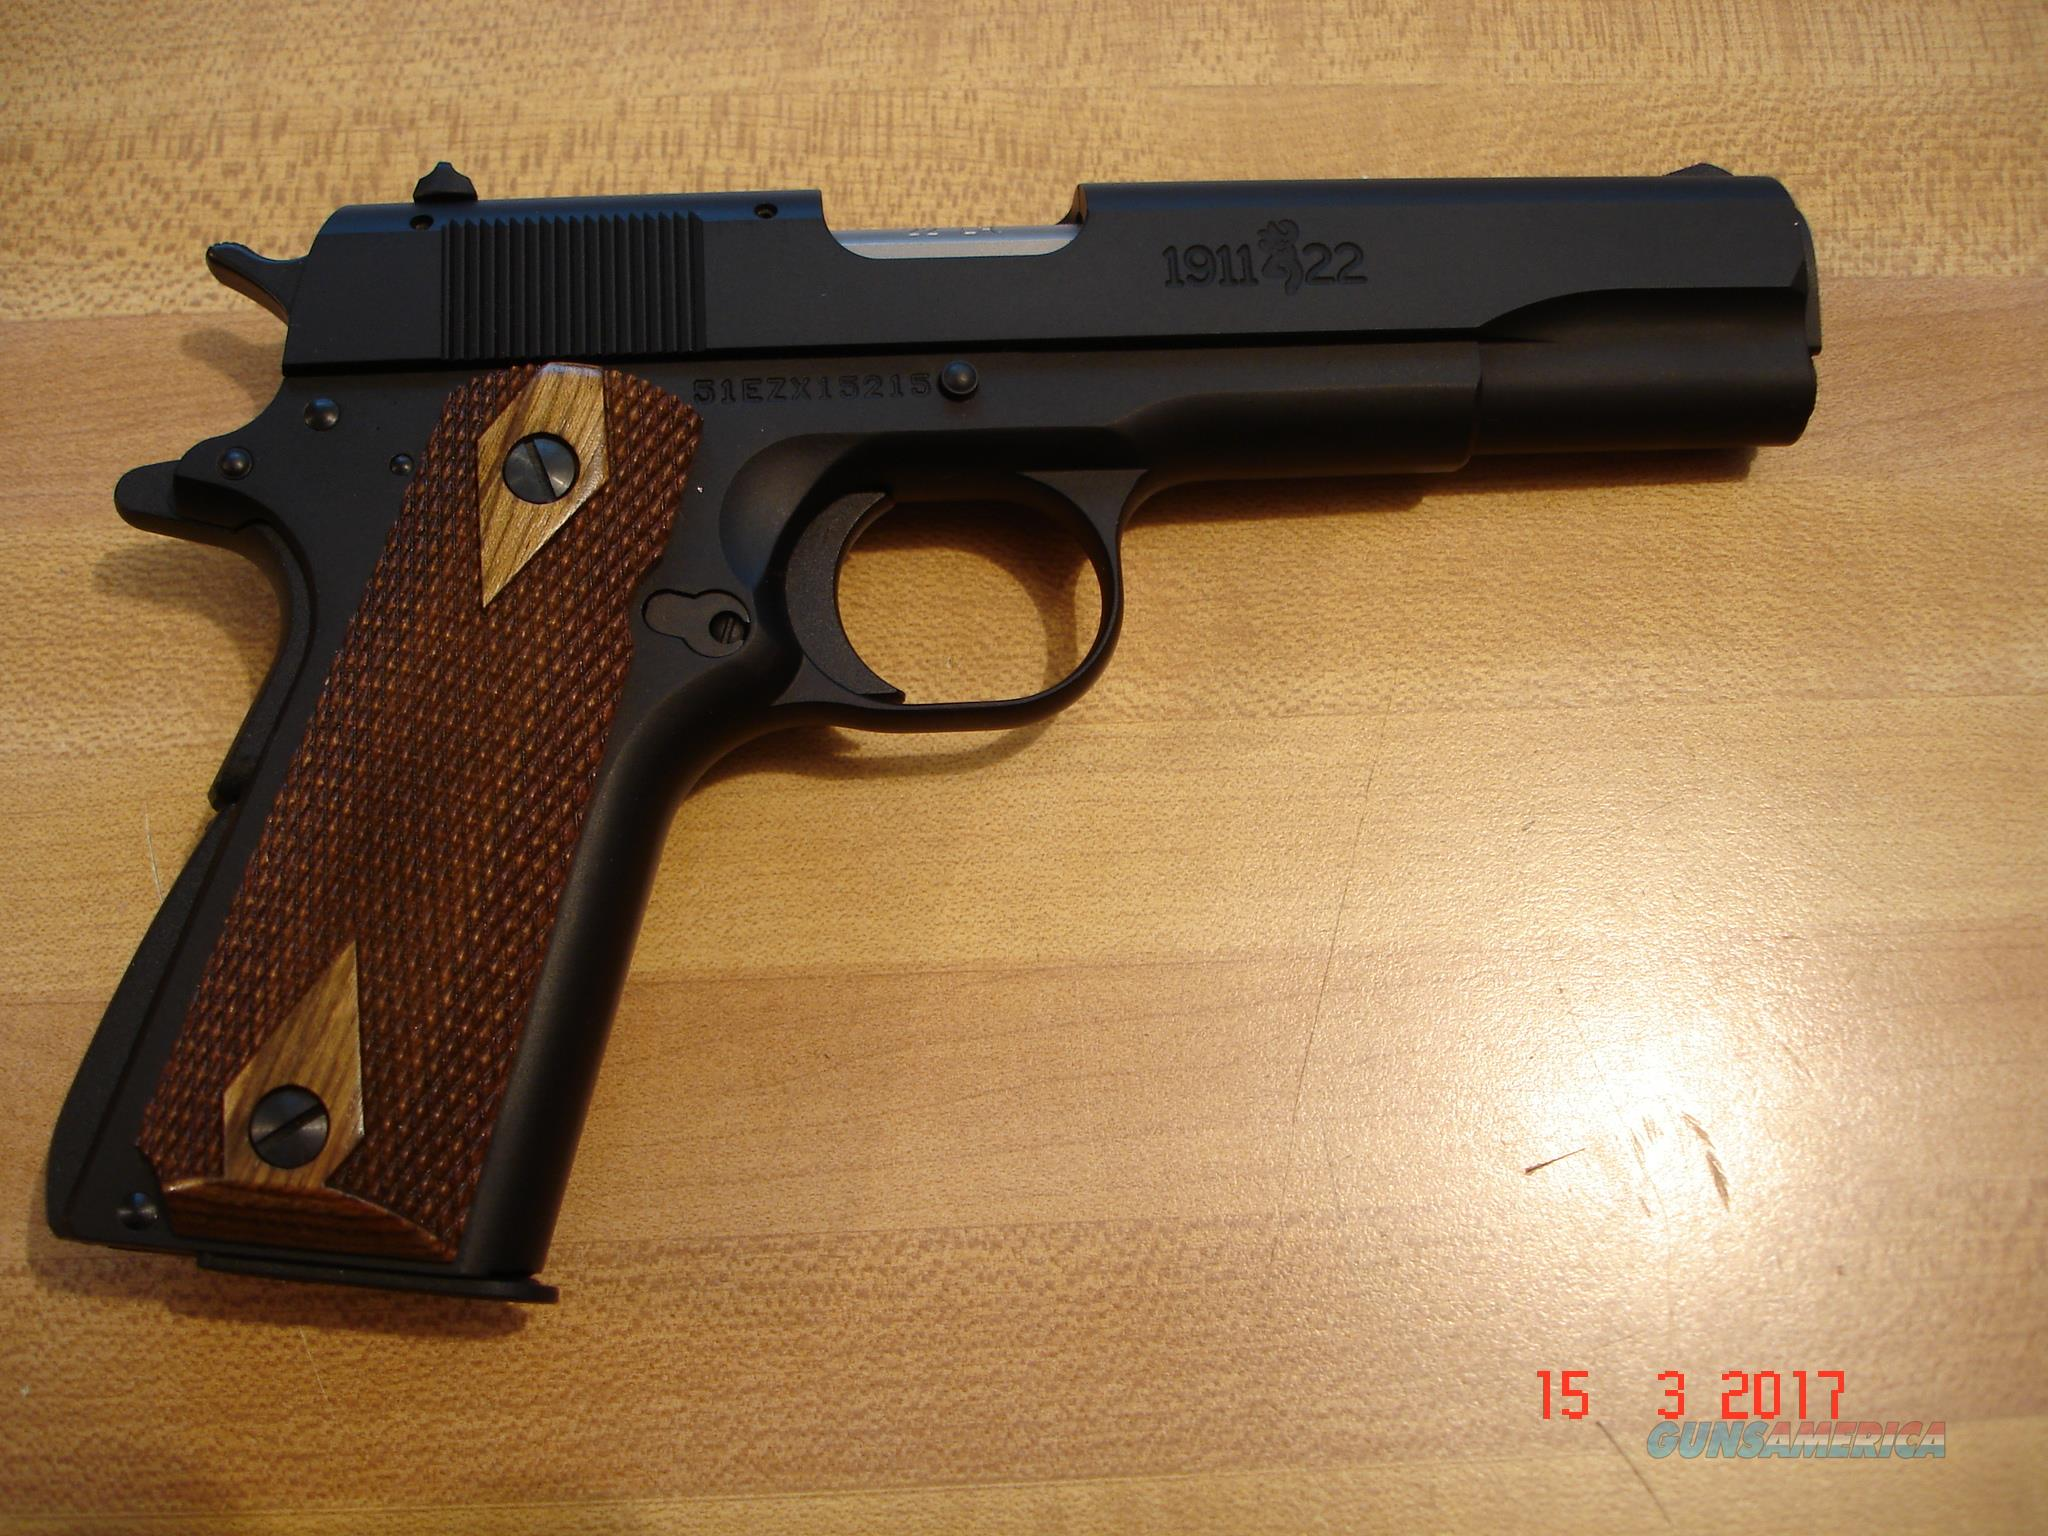 "Browning mod.1911-22 Semi-auto NIB MFG 2013 4 1/4""BBl   Guns > Pistols > Browning Pistols > Other Autos"